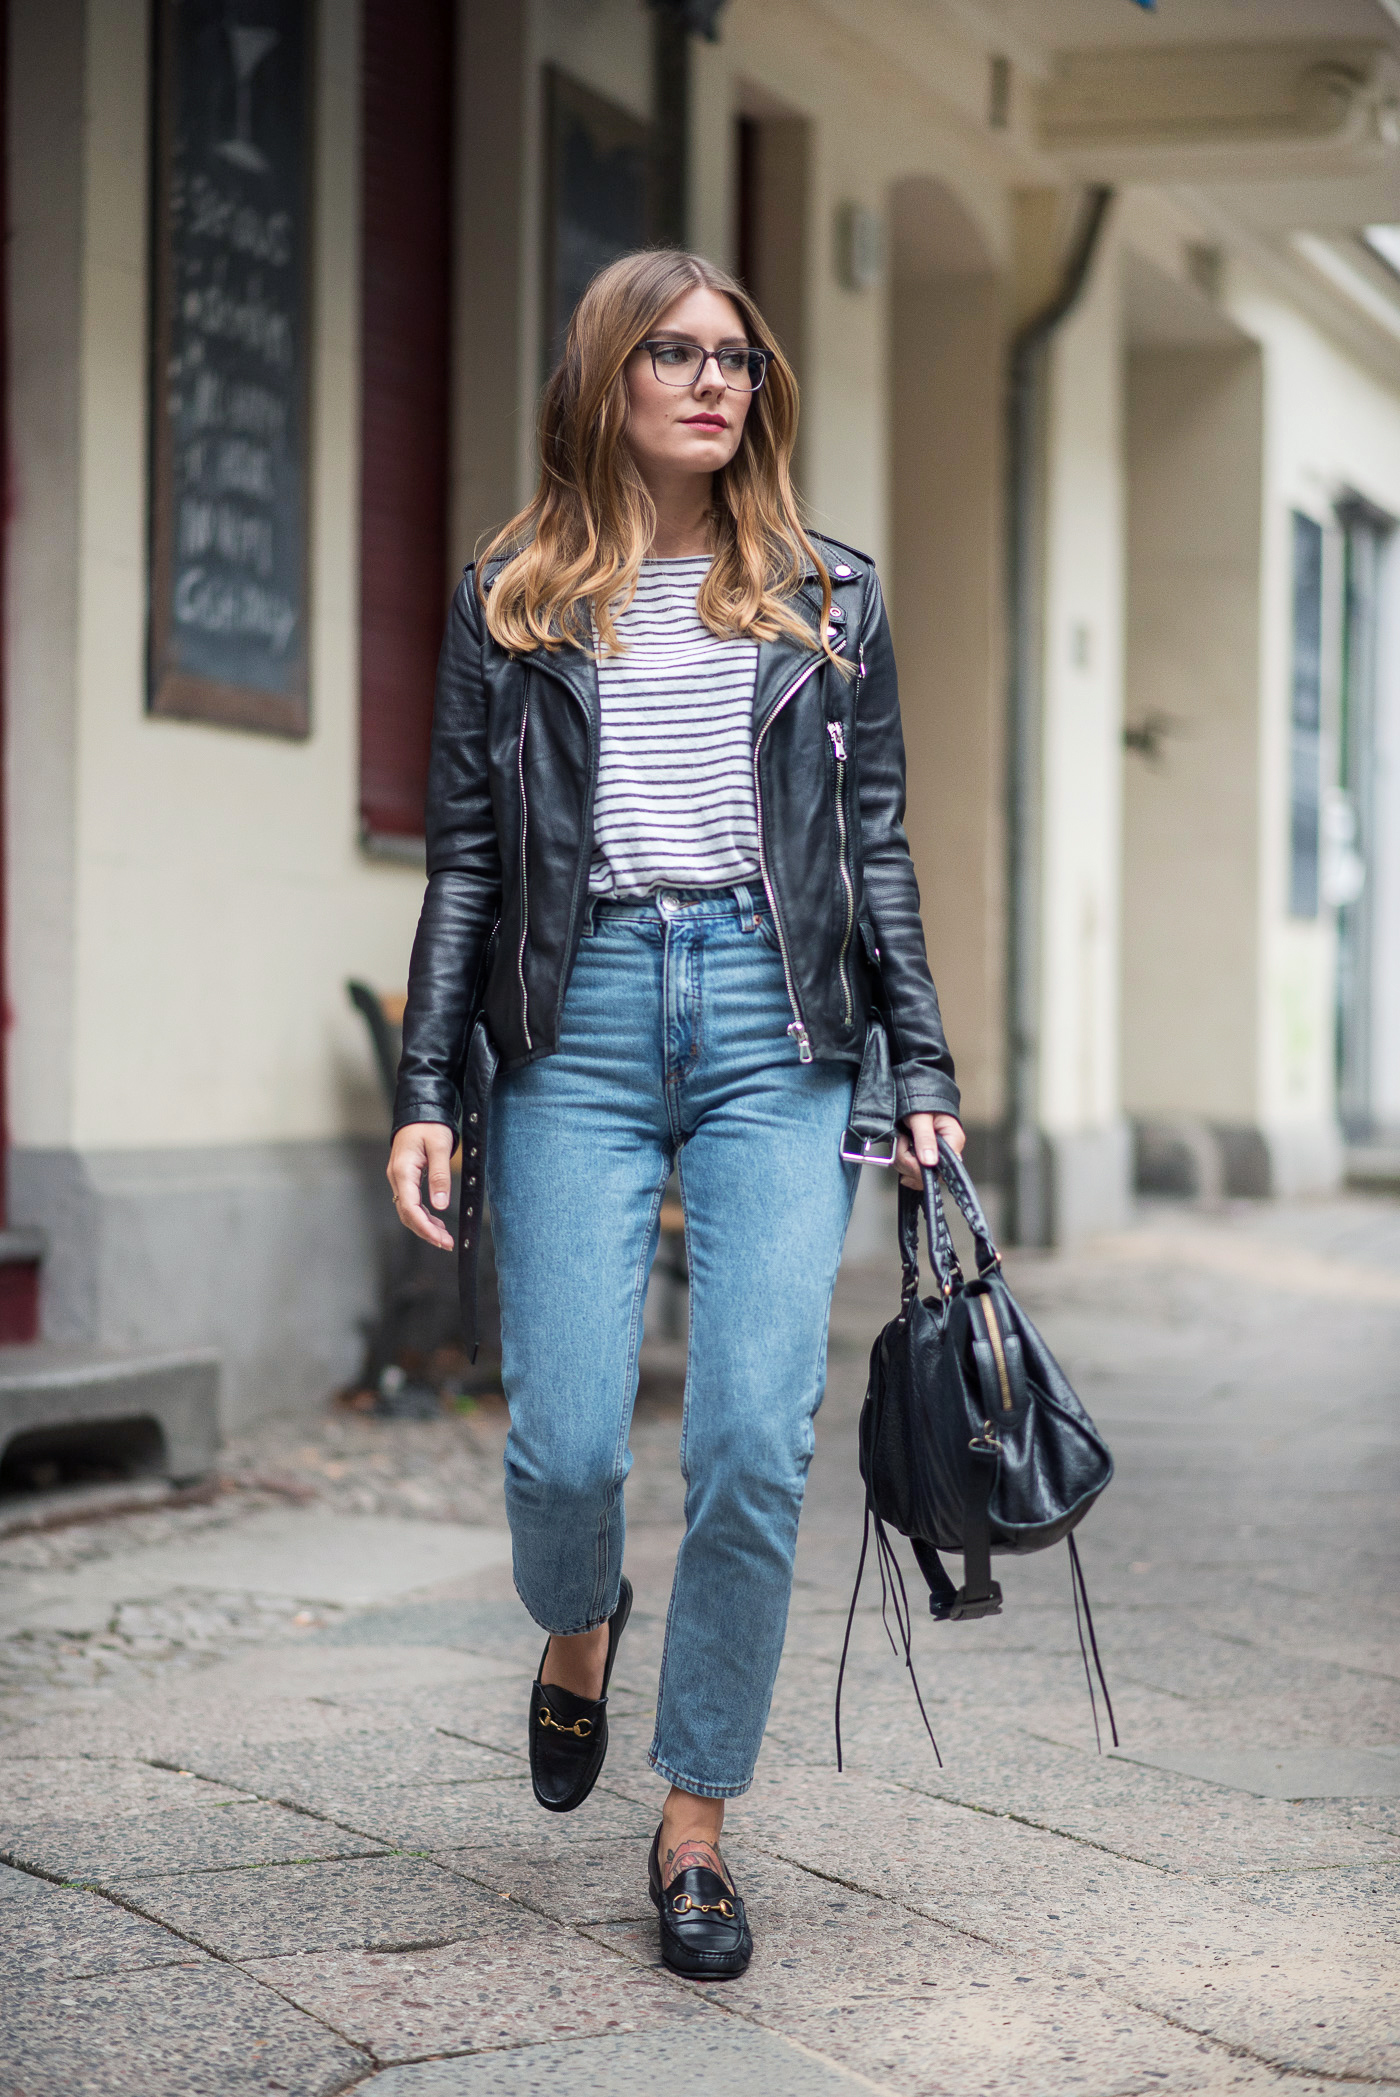 Blogger_for_Mister_Spex_Brille_Outfit_4